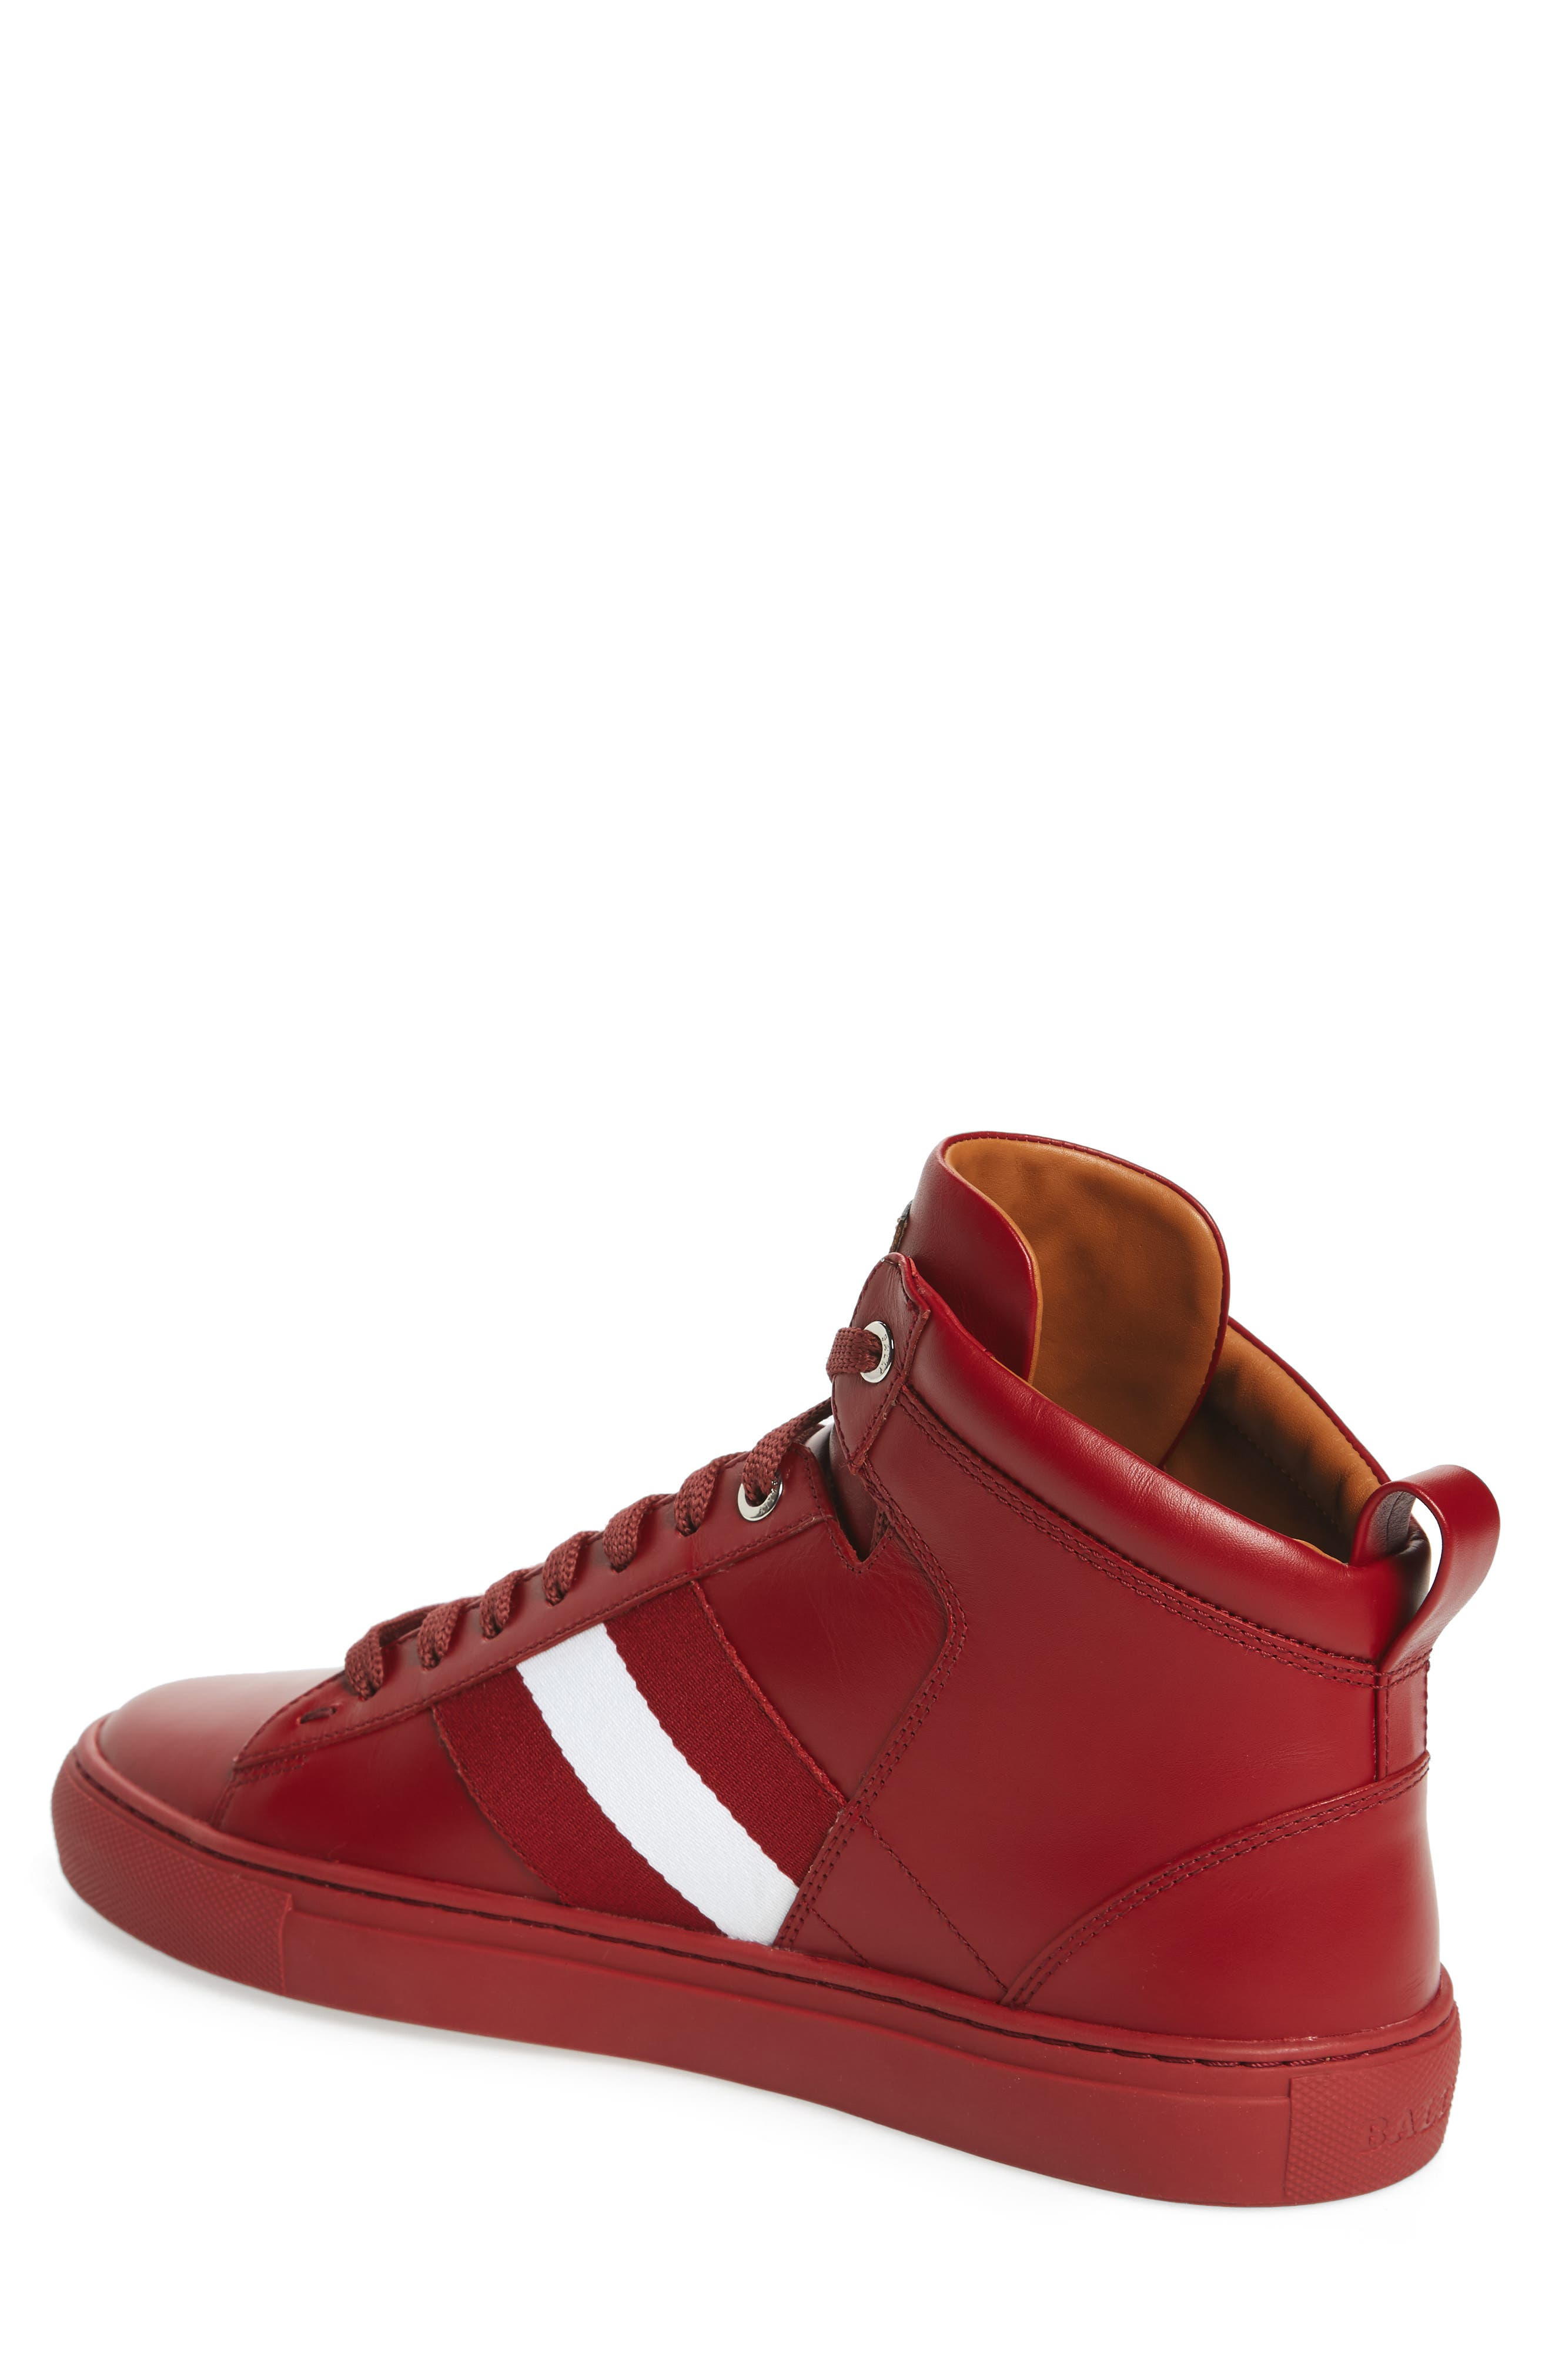 Hedern Sneaker,                             Alternate thumbnail 2, color,                             Red Leather